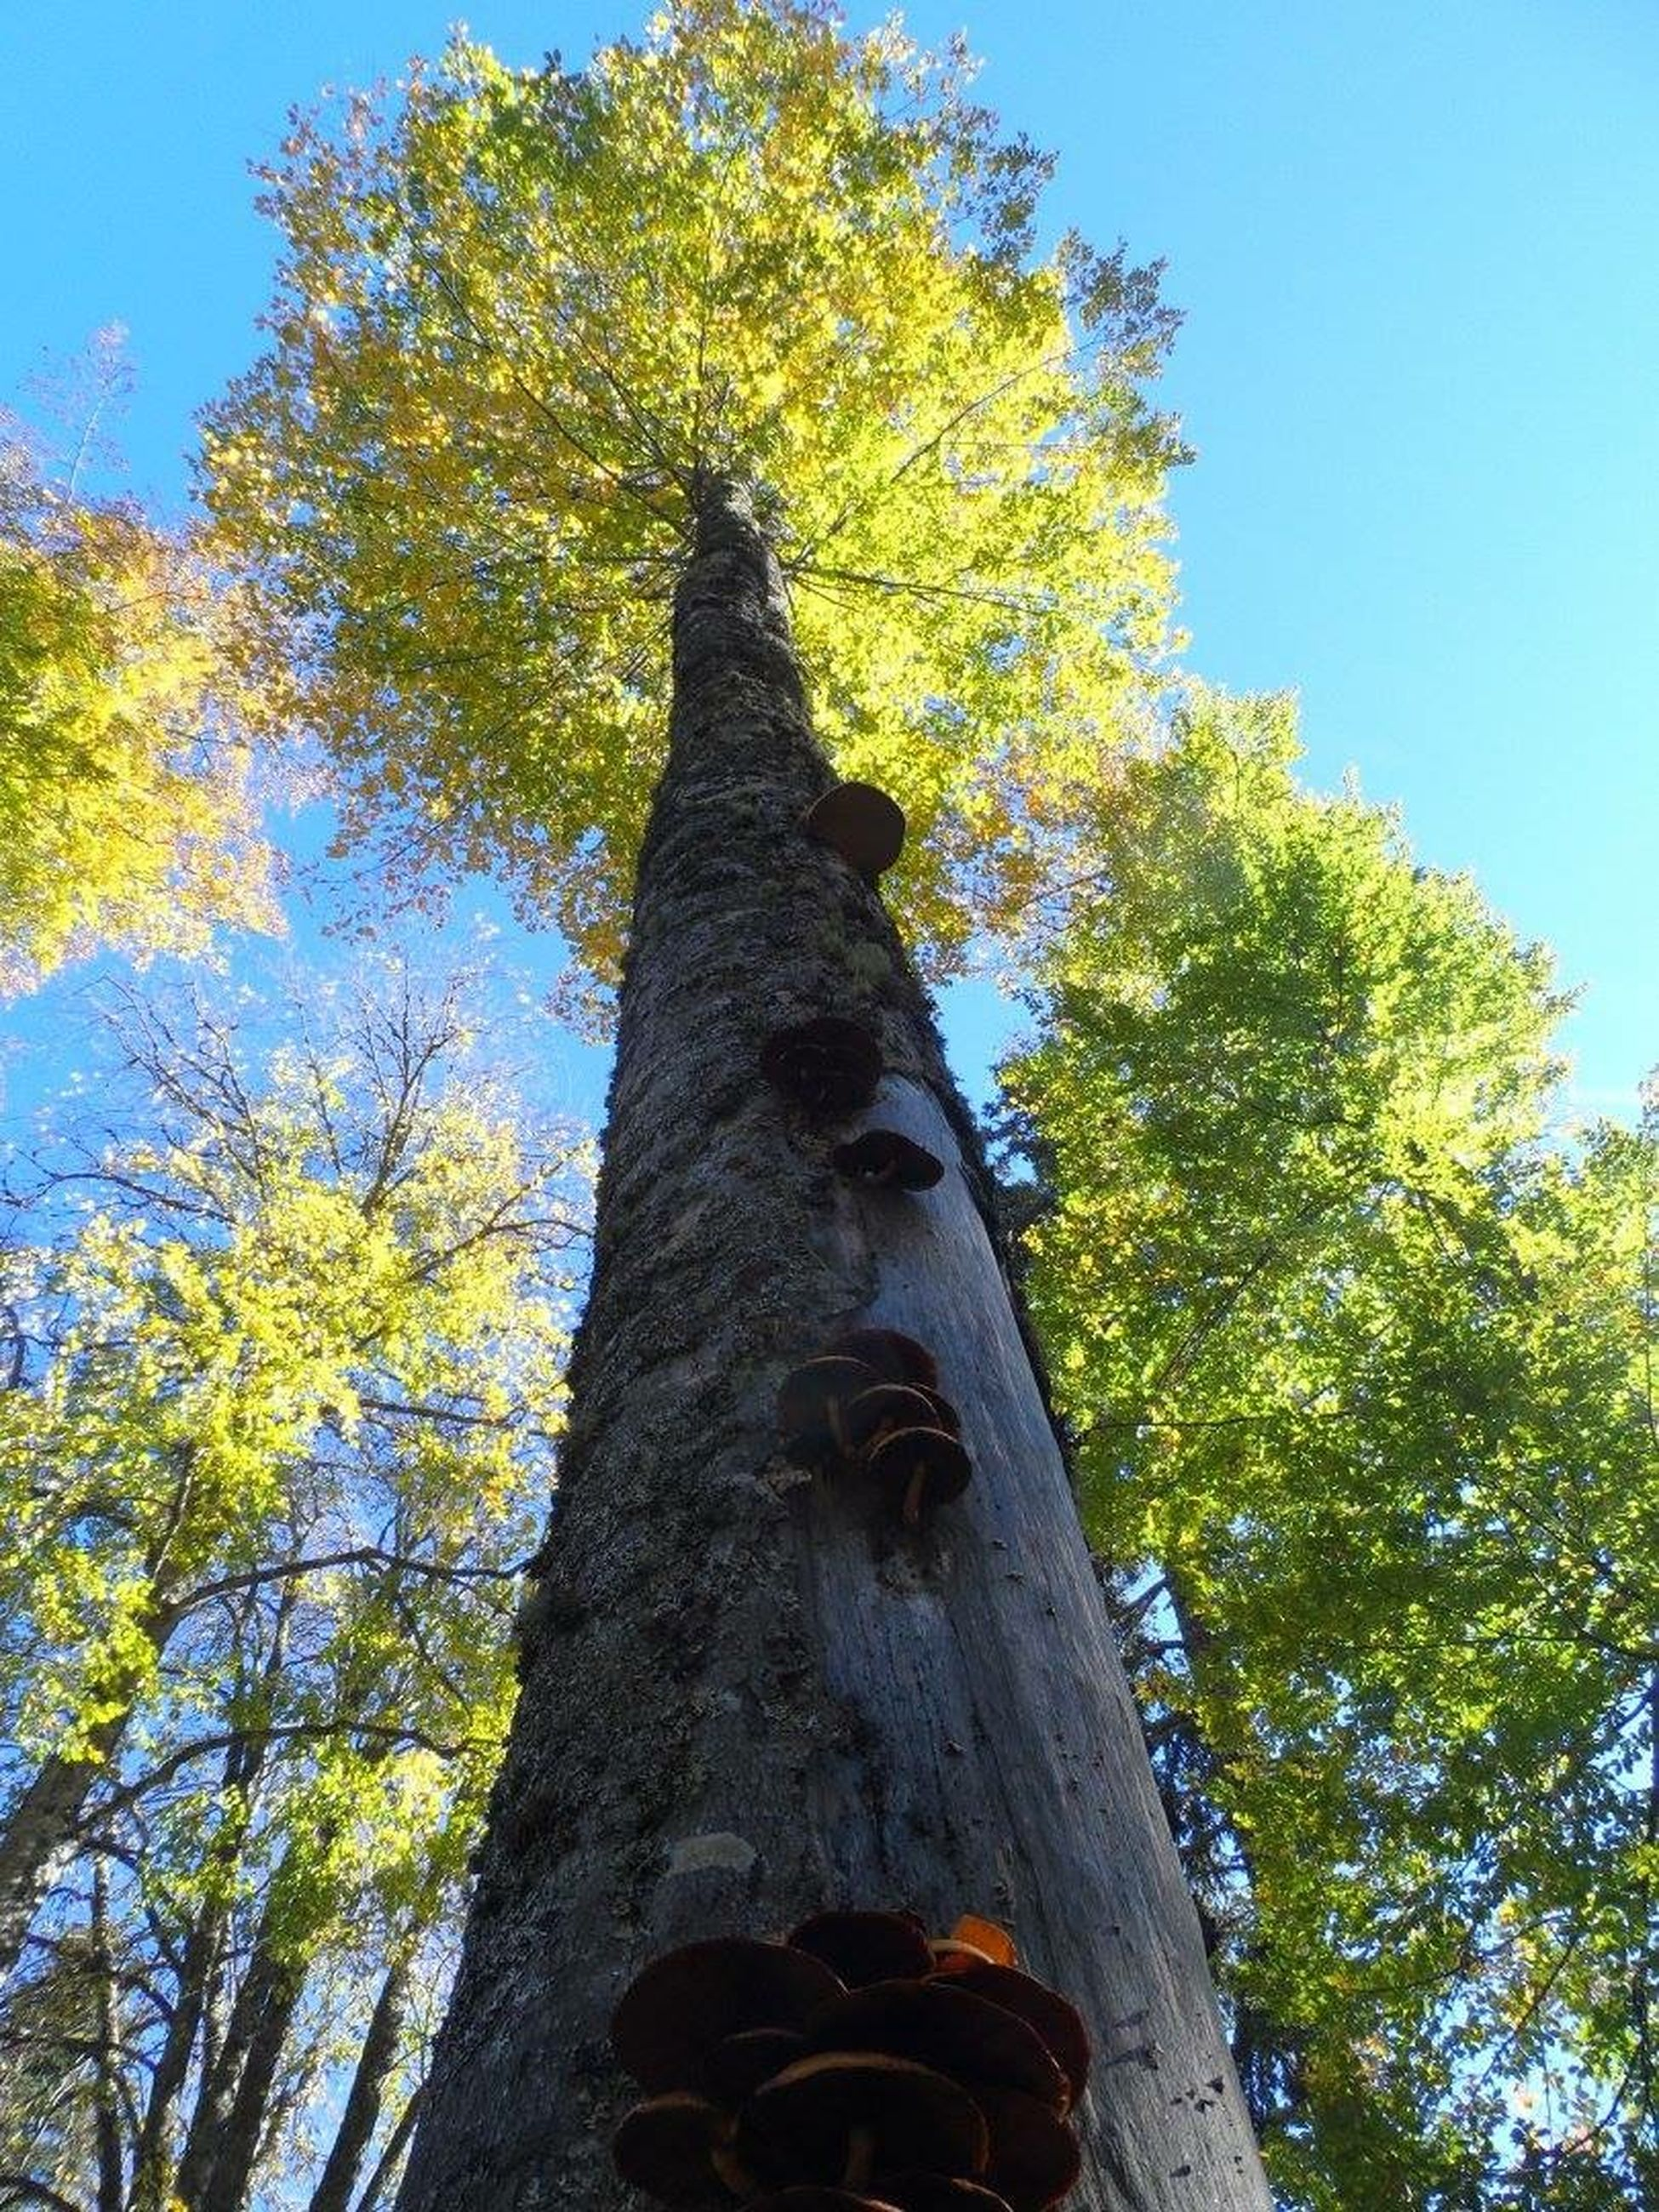 tree, low angle view, clear sky, tree trunk, growth, branch, nature, blue, tranquility, sky, sunlight, day, beauty in nature, outdoors, green color, leaf, forest, autumn, no people, wood - material